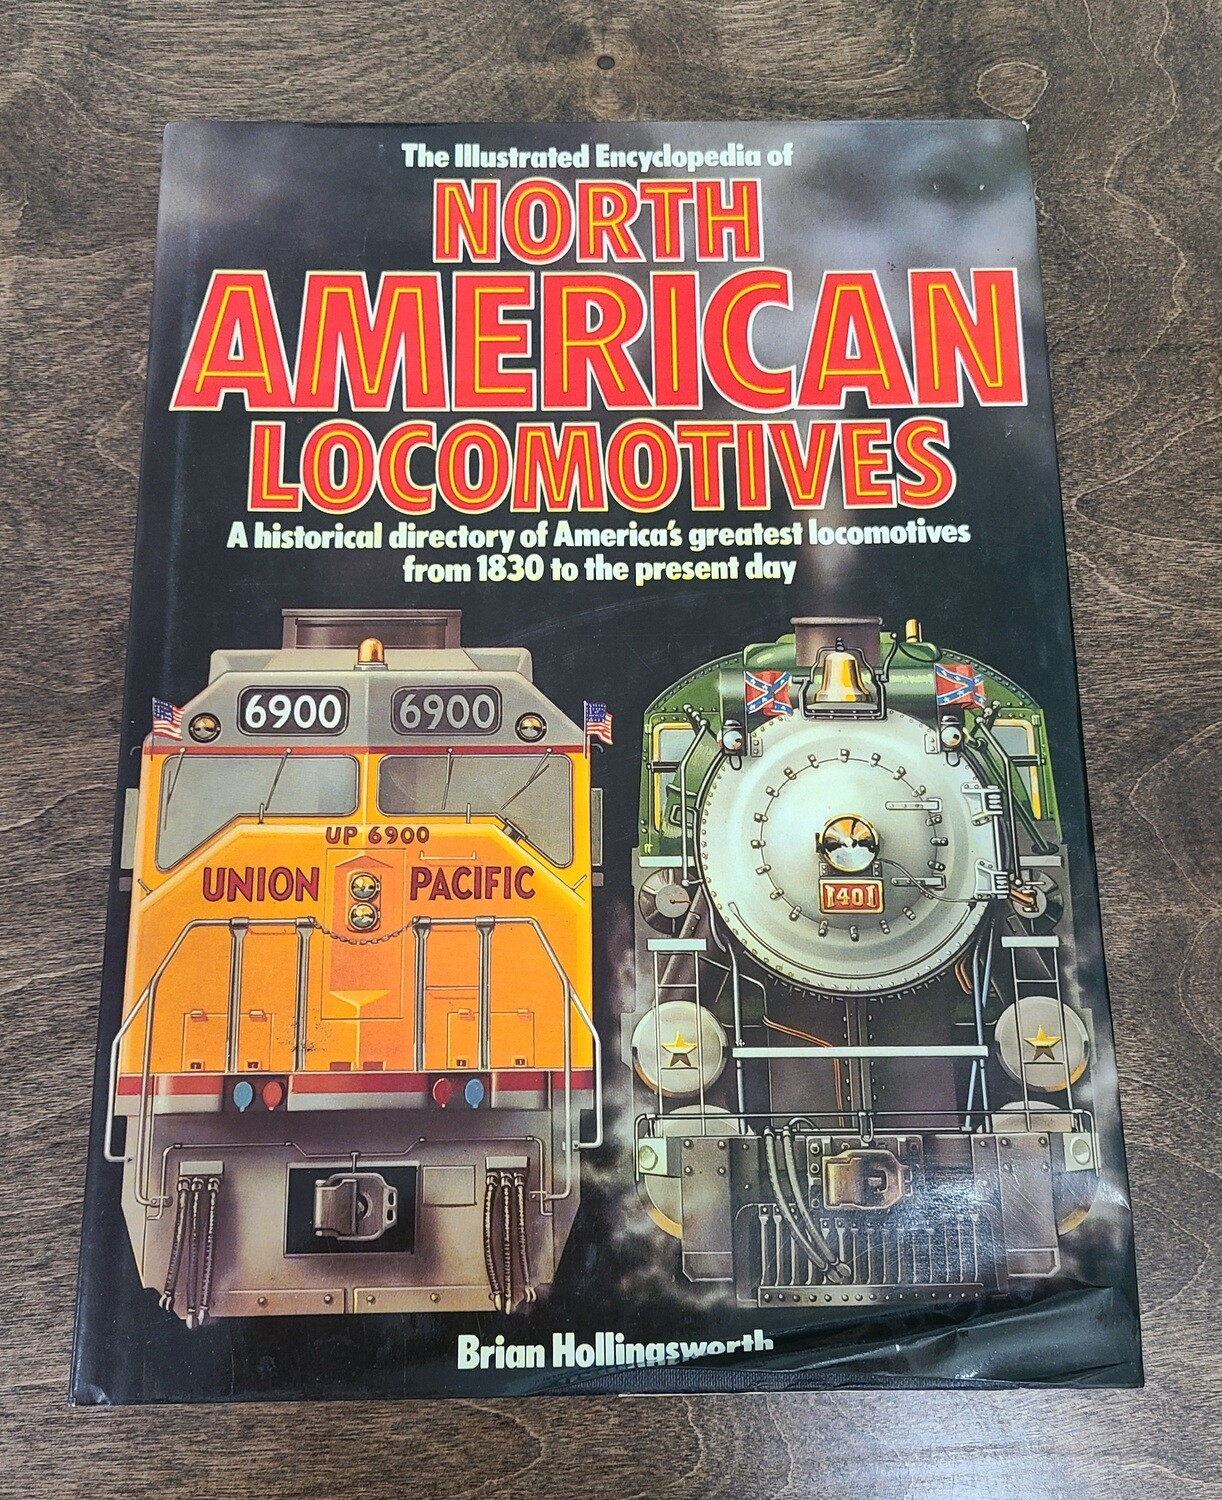 North American Locomotives by Brian Hollingsworth